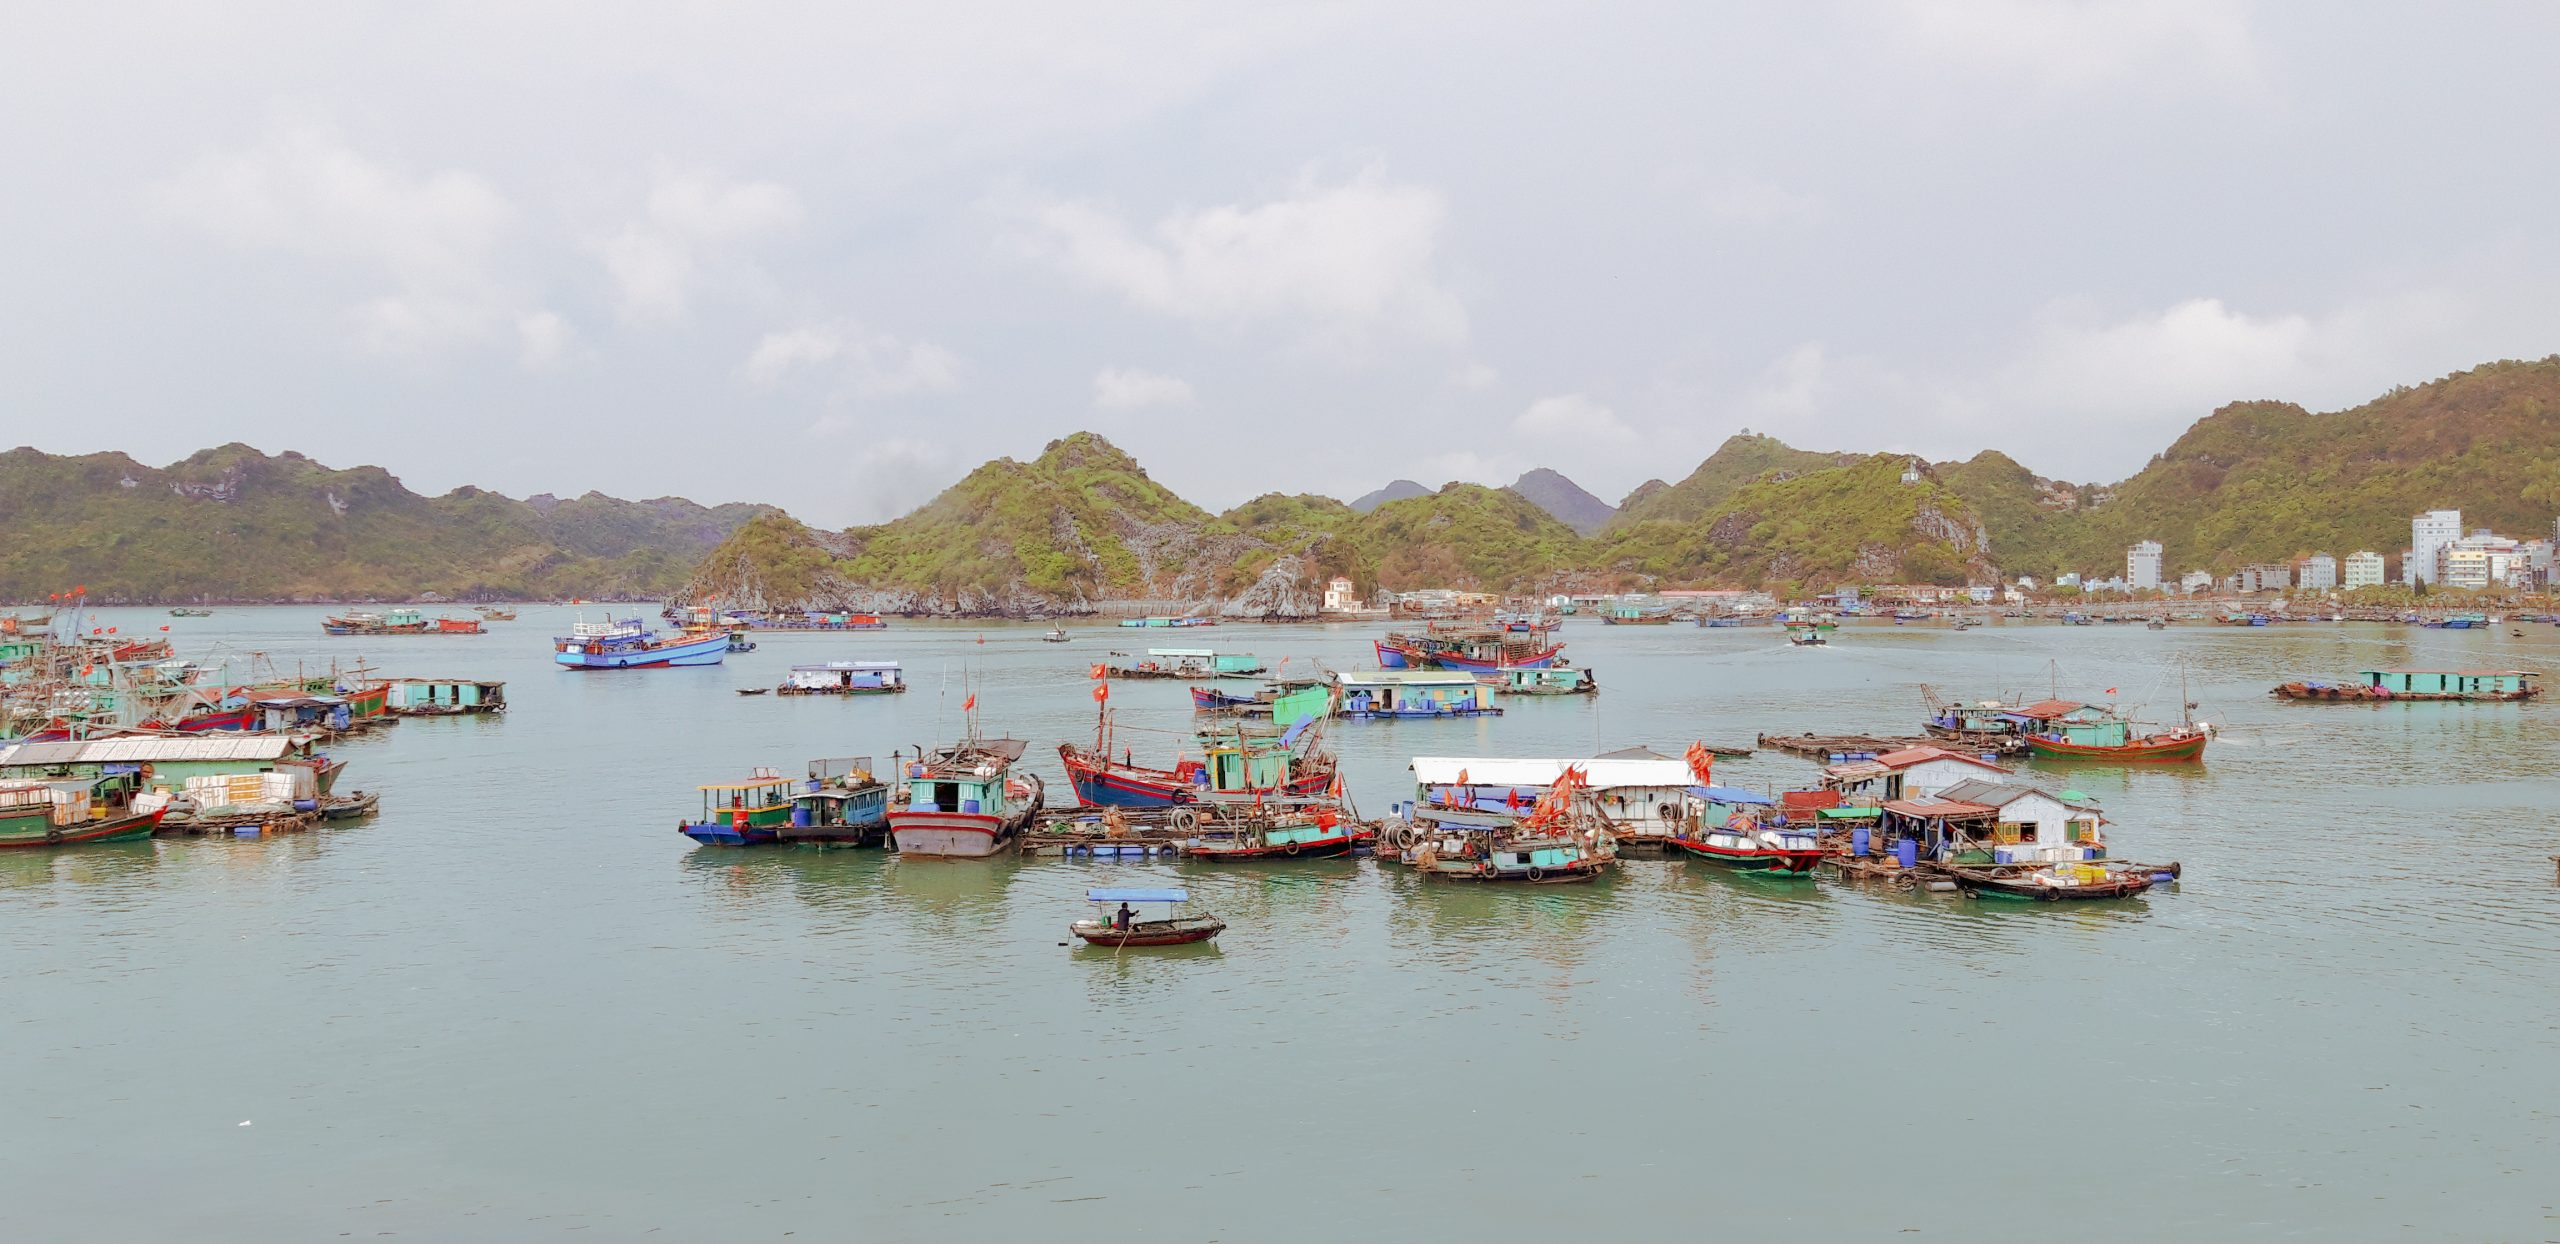 Exploring Cat Ba Island on foot